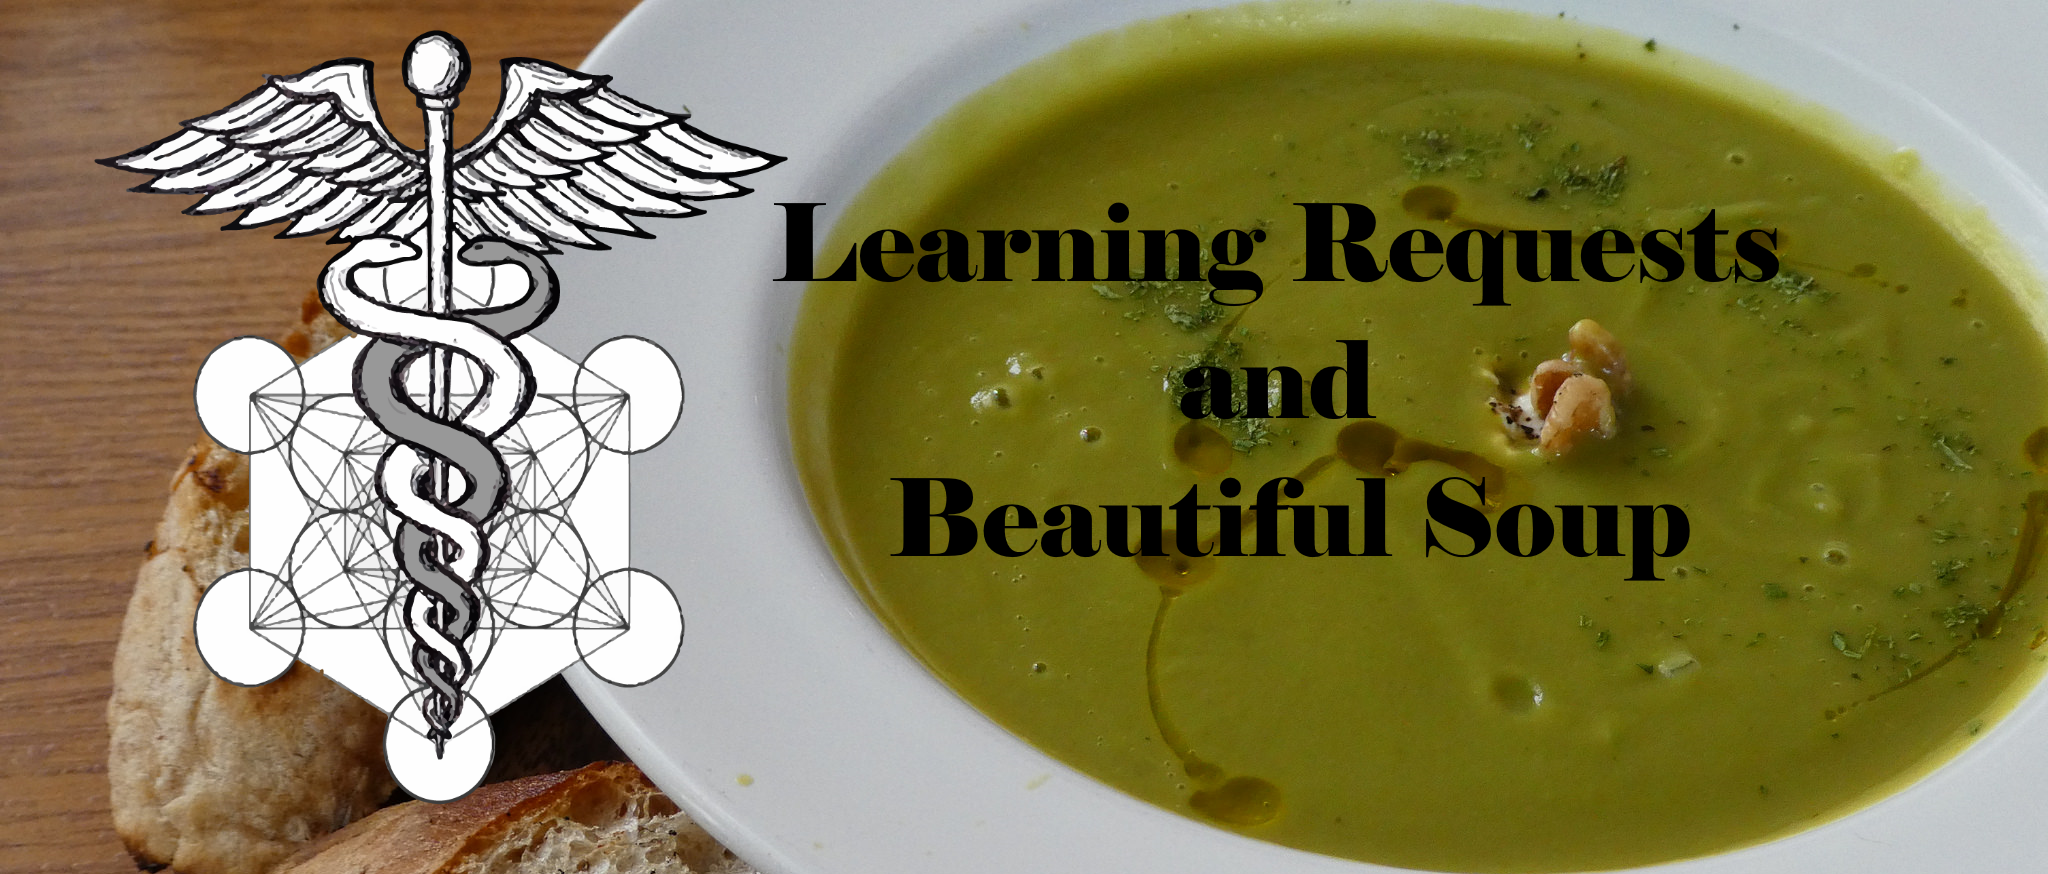 Python Requests and Beautiful Soup - Playing with HTTP Requests, HTML Parsing and APIs